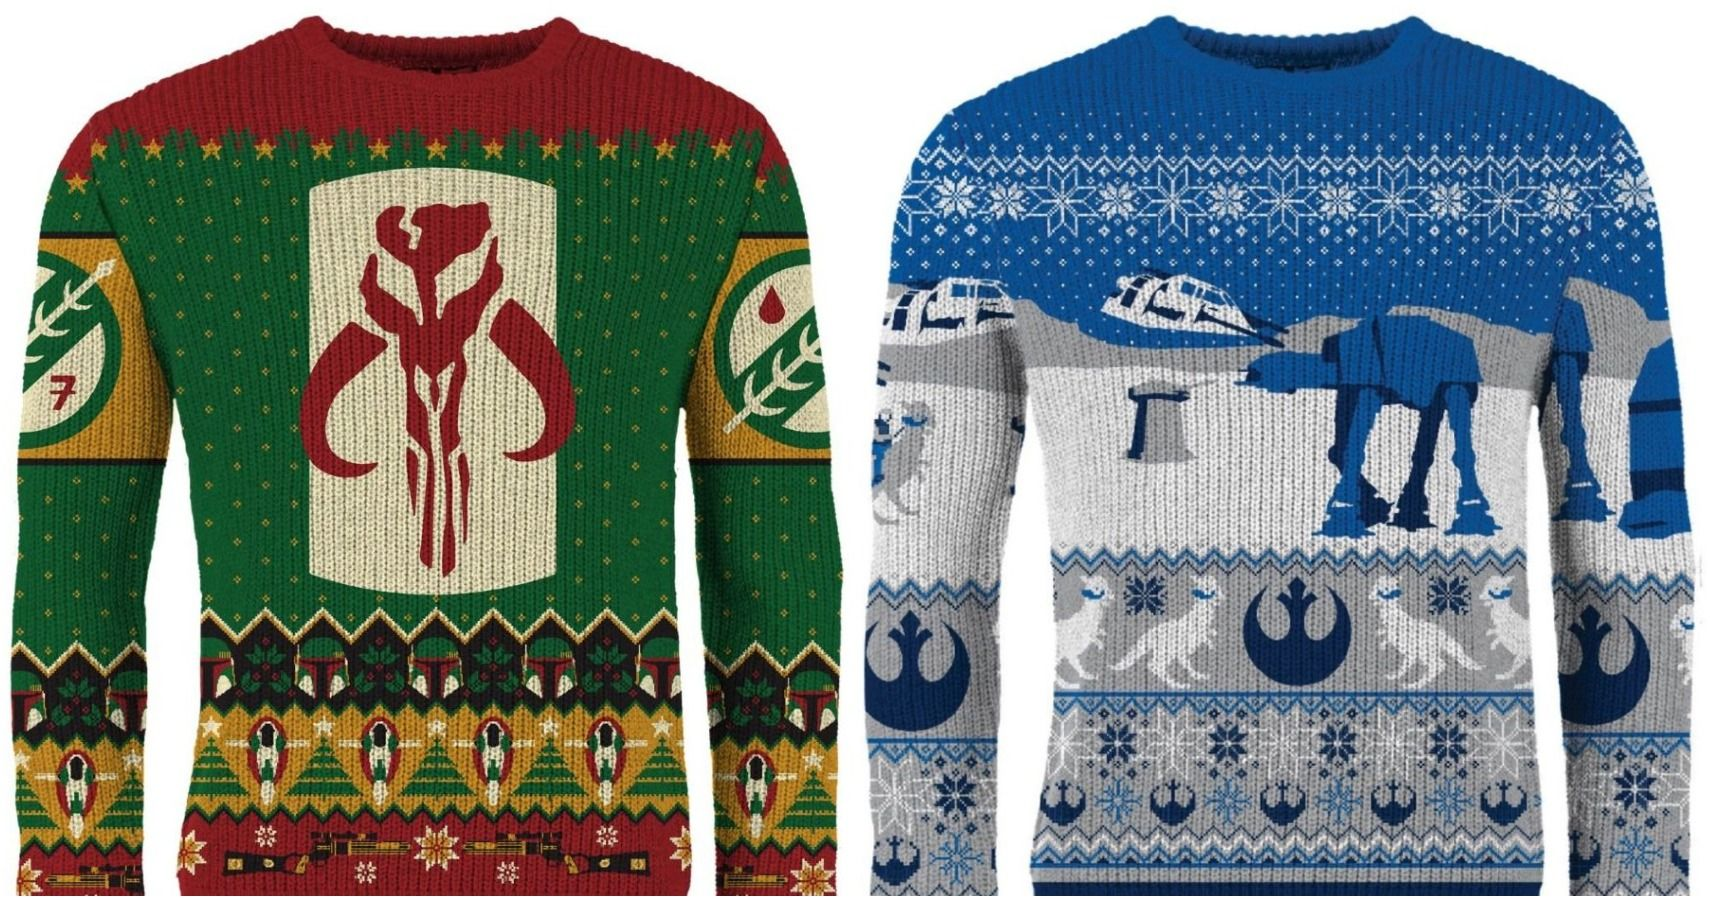 Rock These Nerdy Knitted Christmas Sweaters From Merchoid